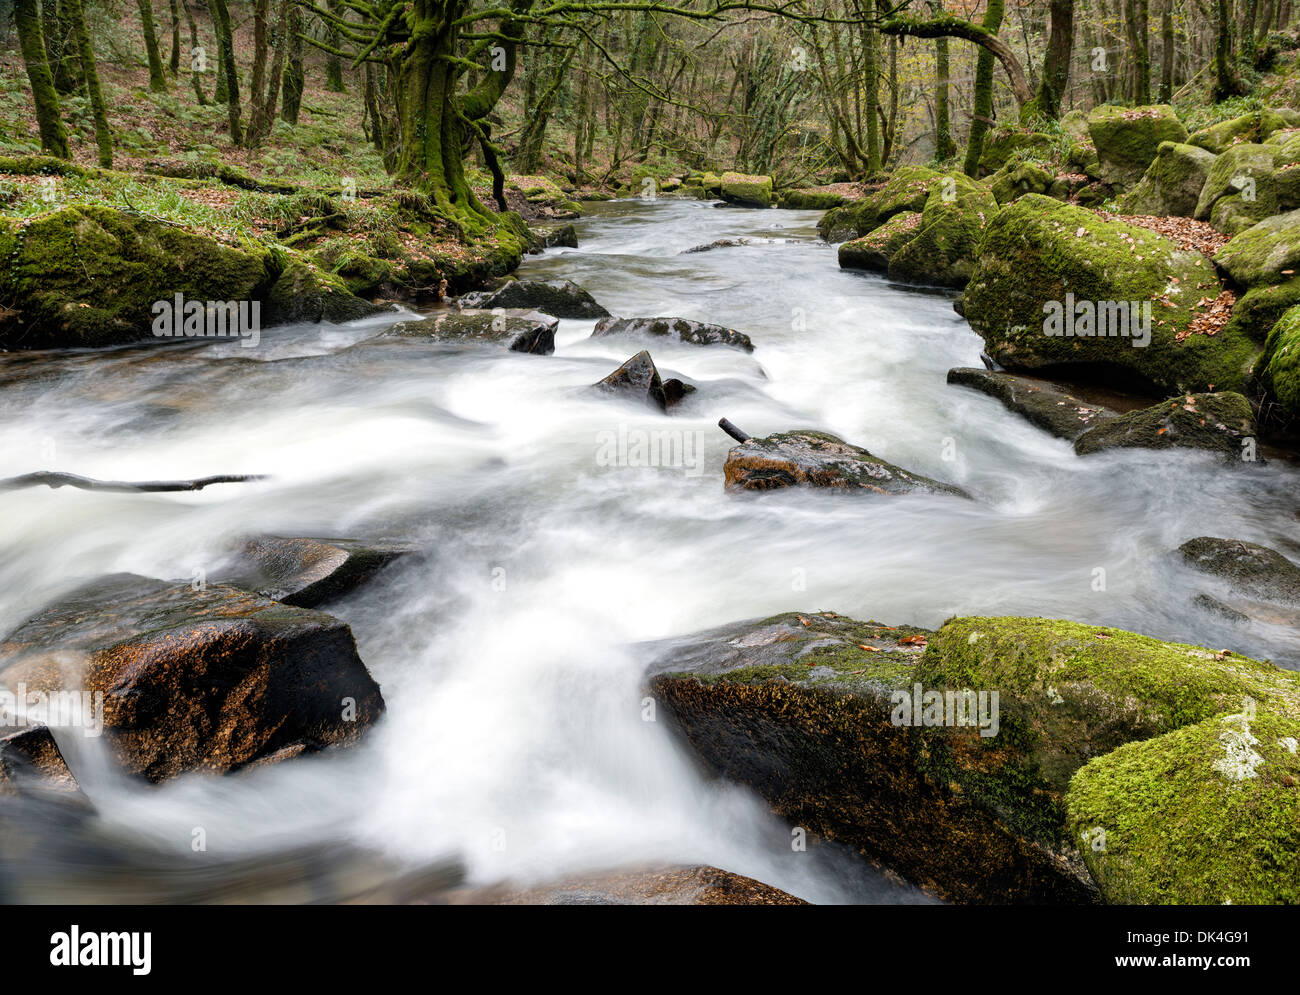 Water cascading through ancient woodland at Golitha Falls on the edge of Bodmin Moor in Cornwall - Stock Image